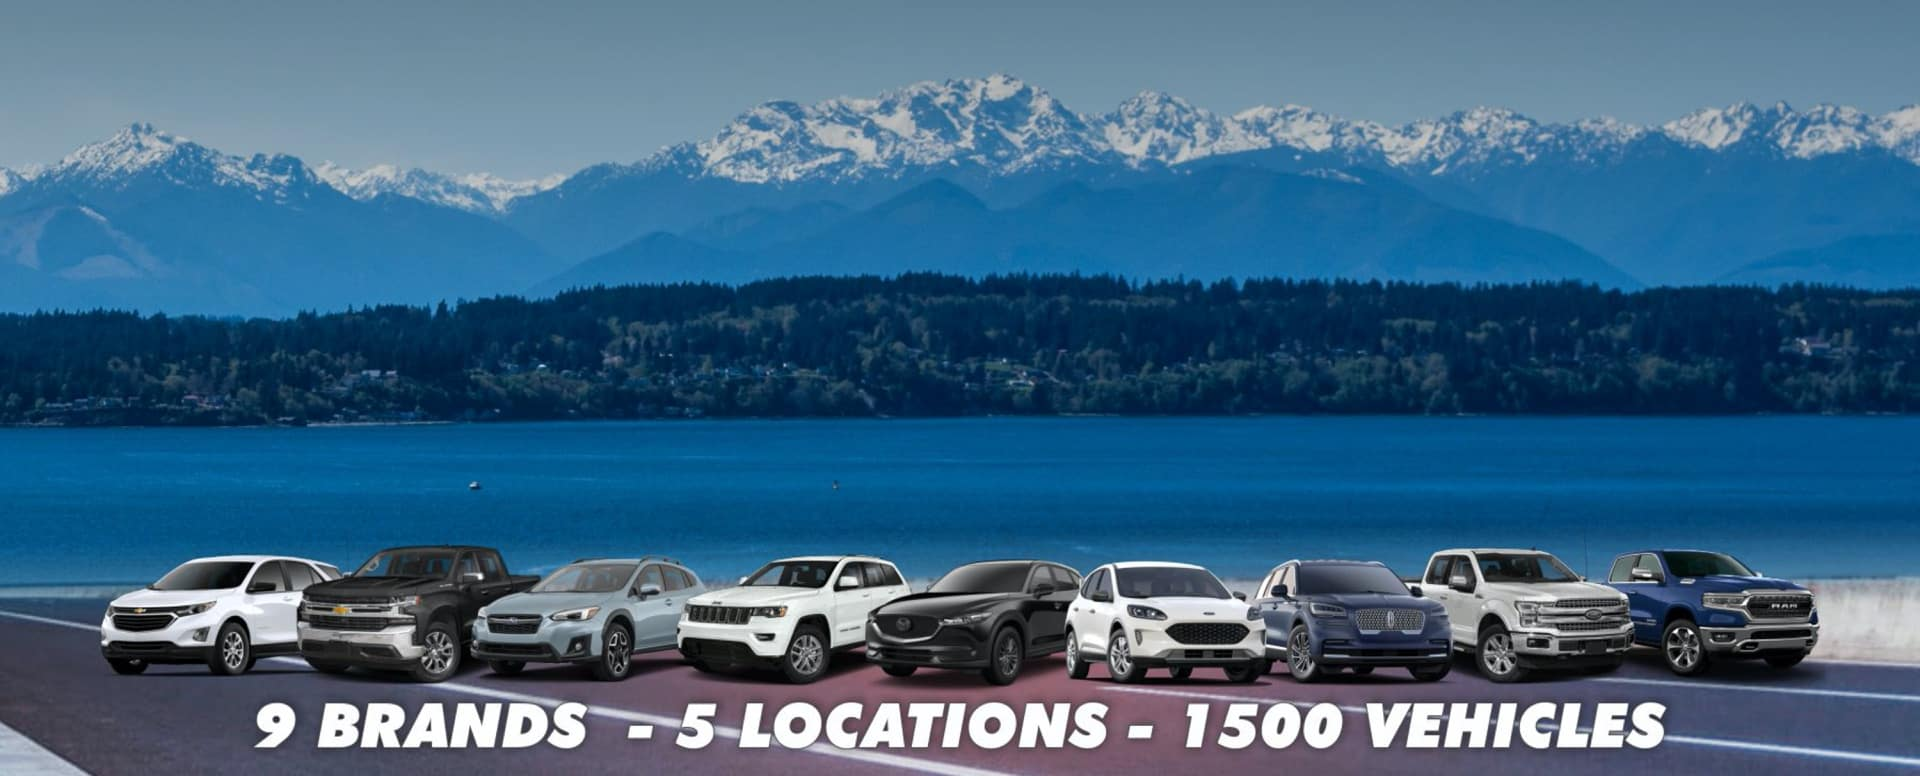 Car lineup in front of mountain range